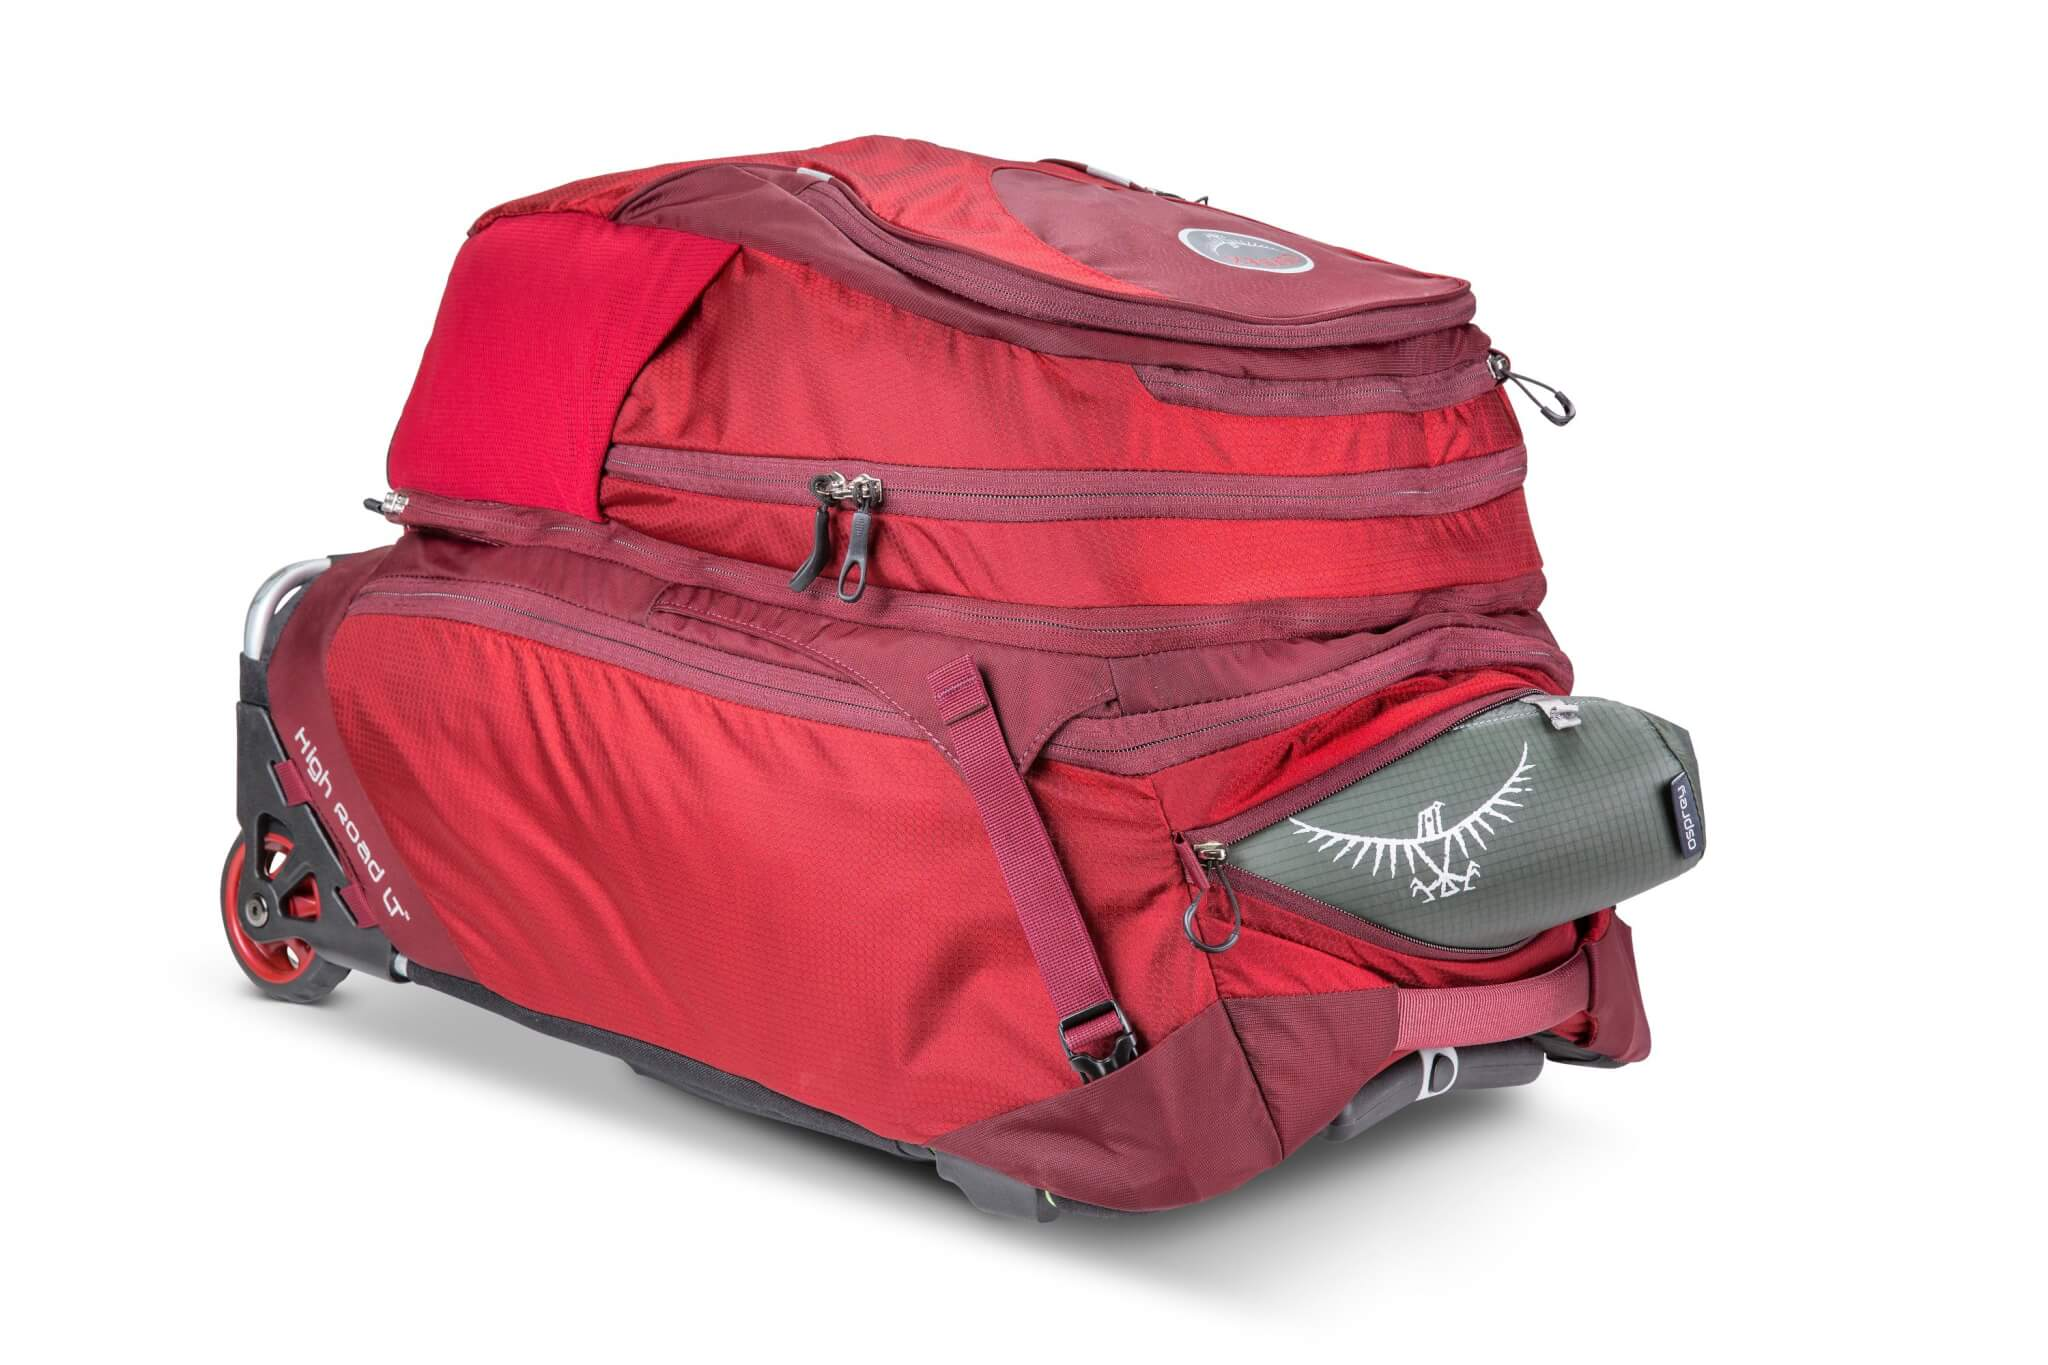 Rolling Carry On Backpacks What To Buy Avoid